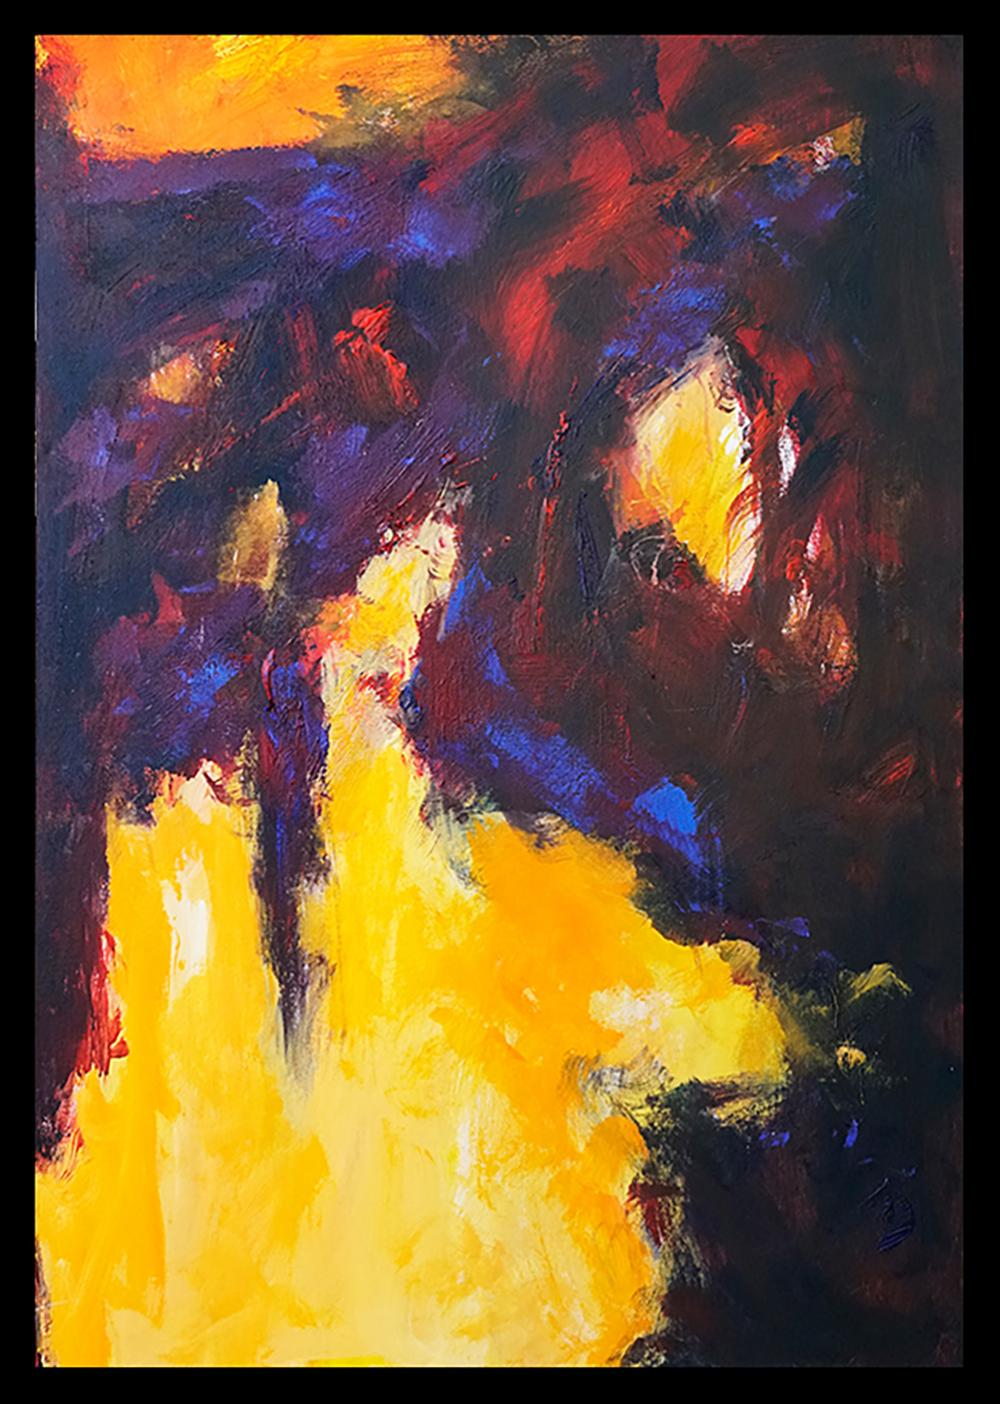 Abstract Original on canvas by Michael Schofield